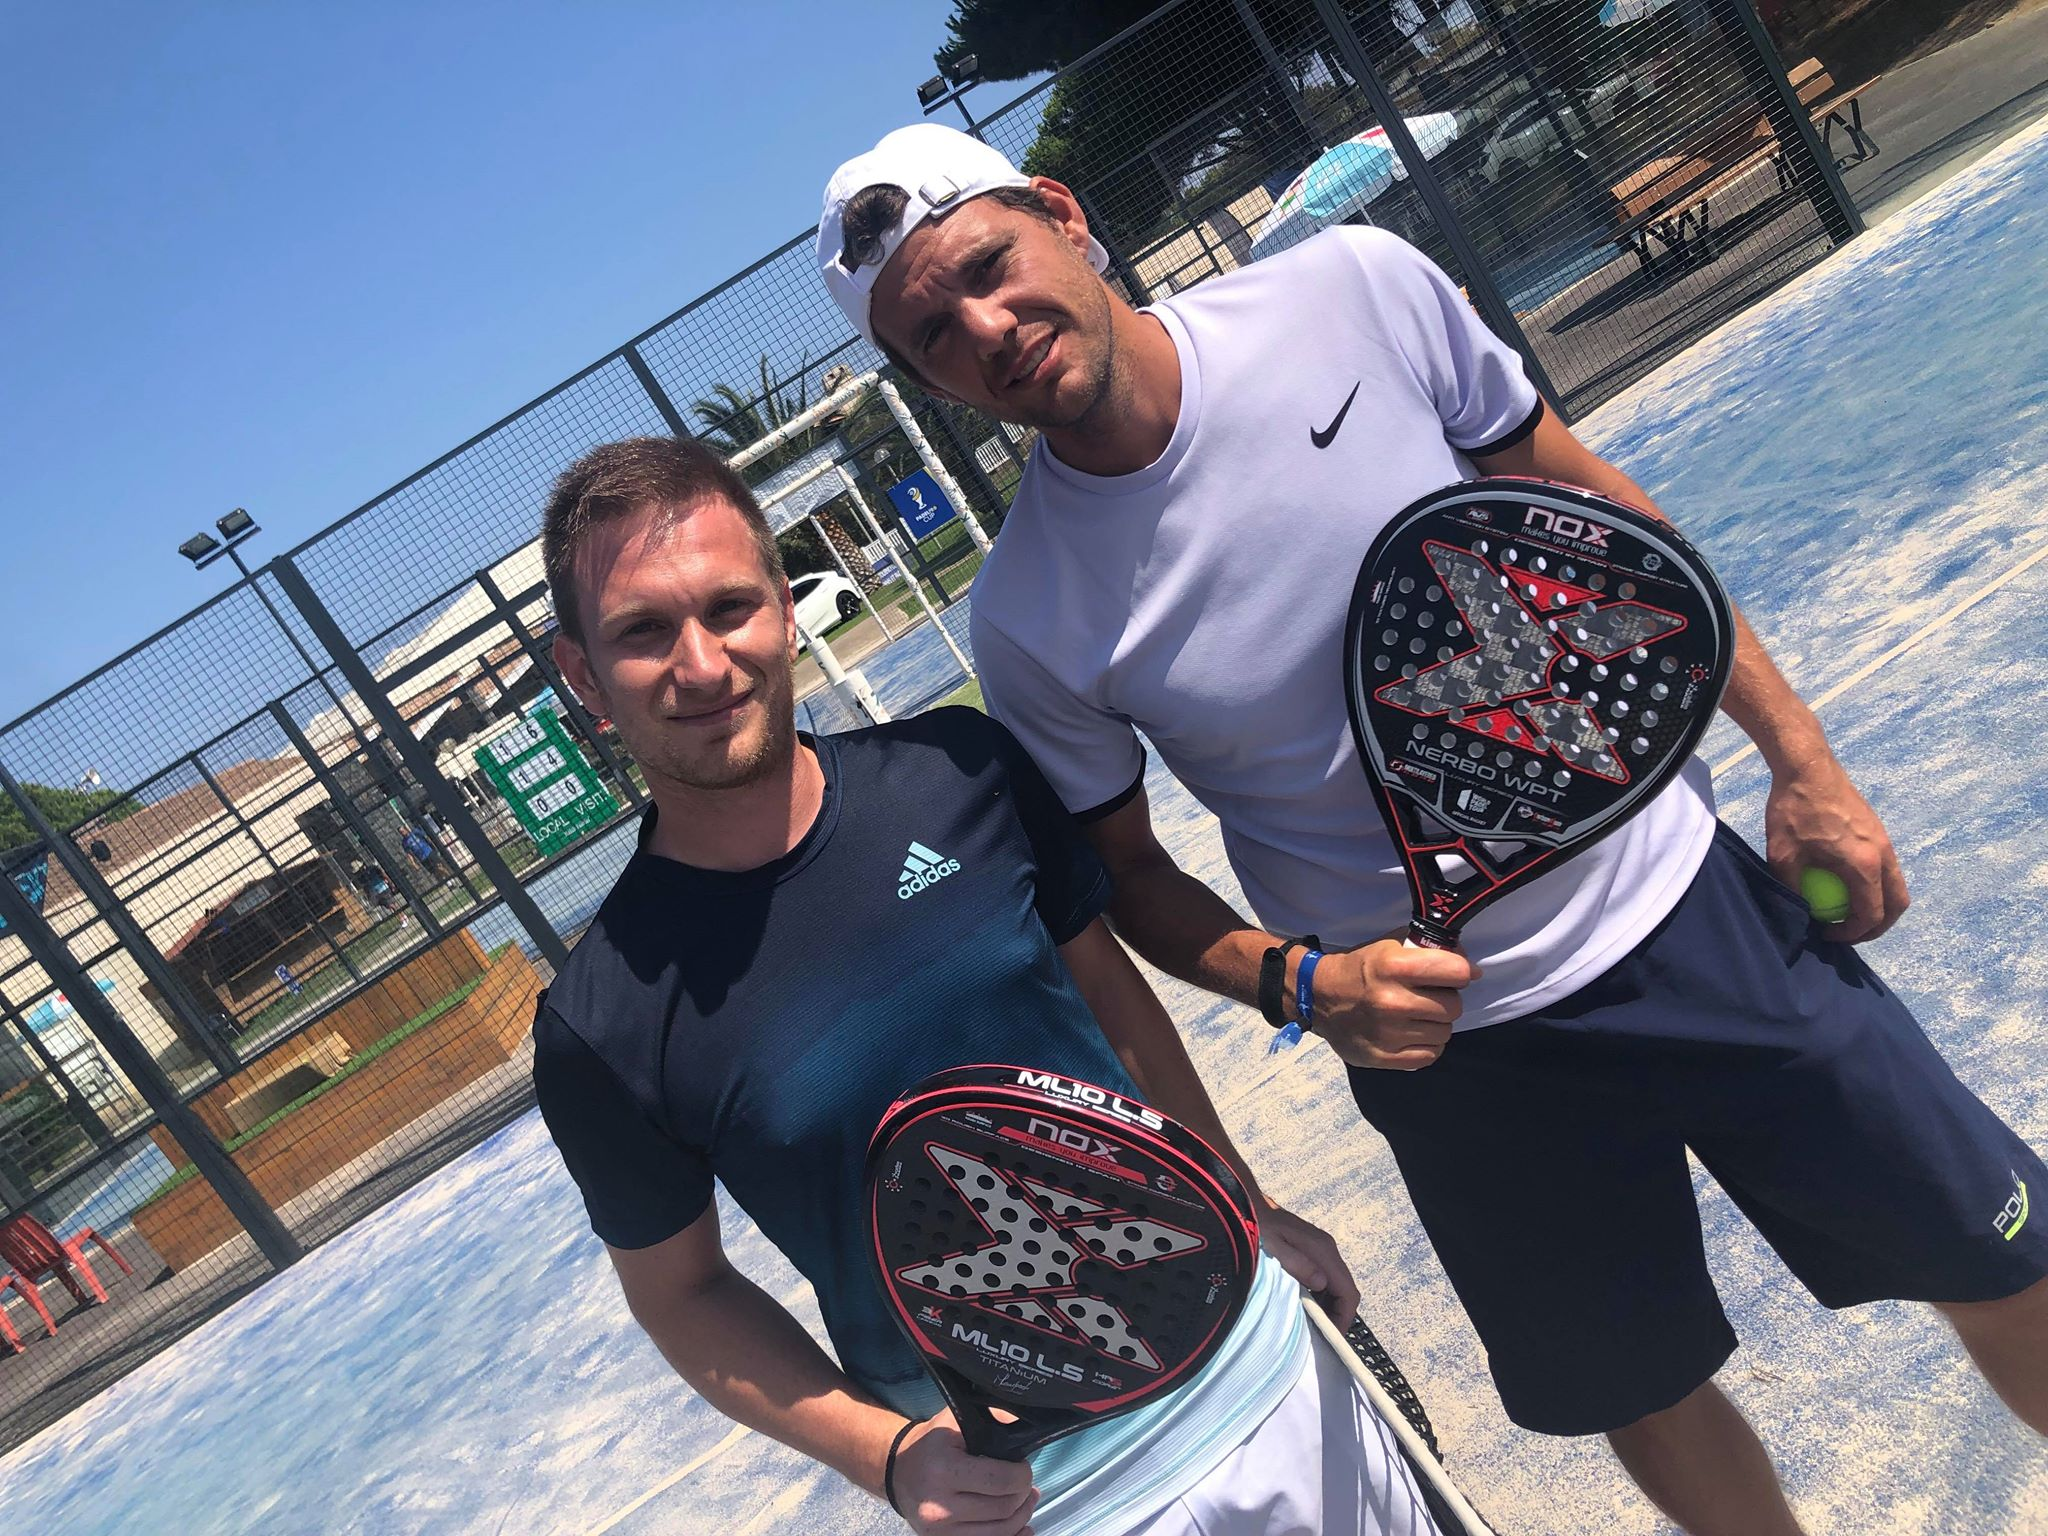 Paul-Henri Mathieu : 1er tournoi de padel, 1er quart !